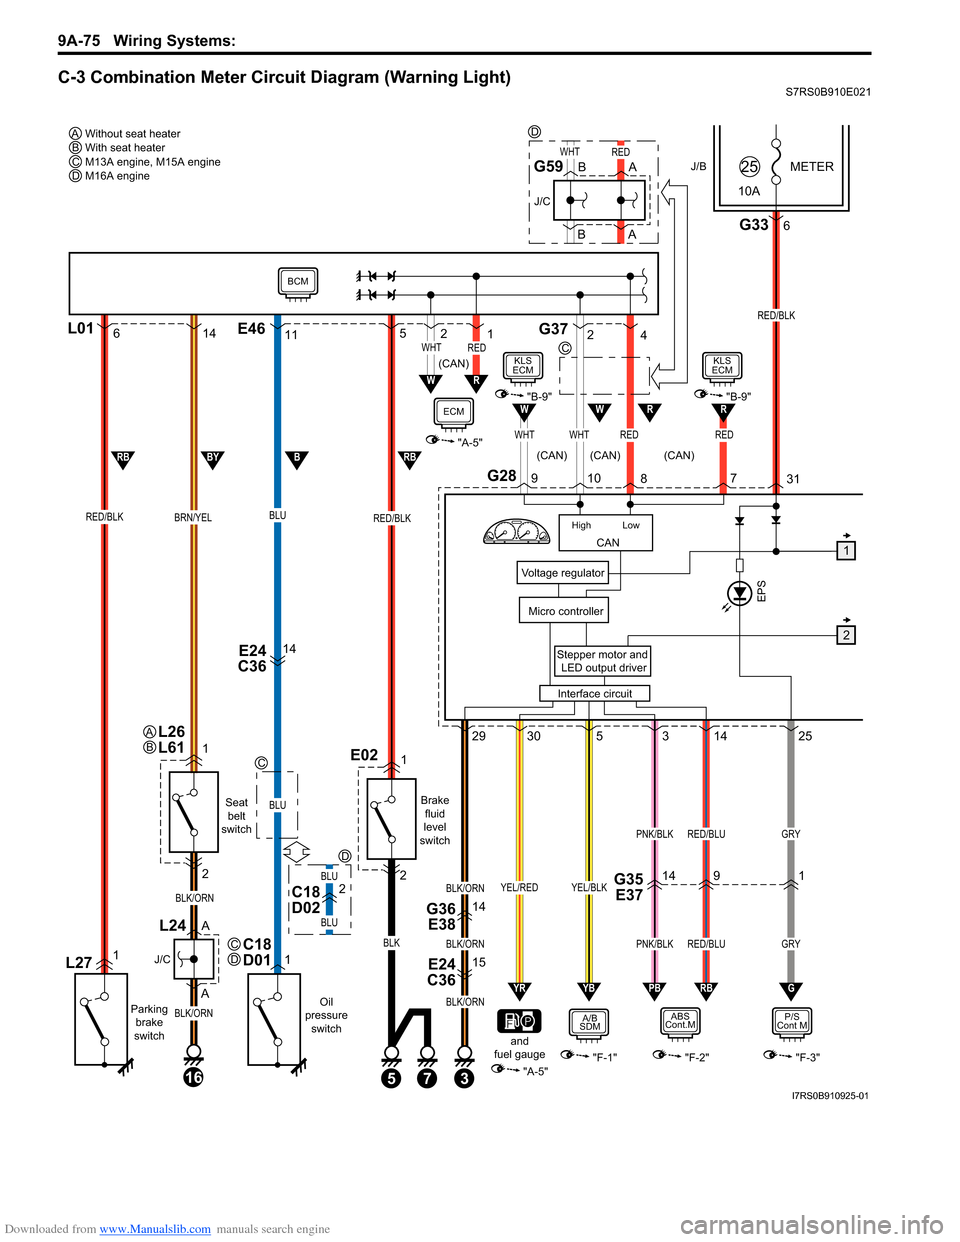 SUZUKI SWIFT 2008 2.G Service Workshop Manual Downloaded from www.Manualslib.com manuals search engine 9A-75 Wiring Systems:  C-3 Combination Meter Circuit Diagram (Warning Light)S7RS0B910E021 J/BMETER 10A25 G2831 3 E24  C3615 G36 E3814 Stepper m